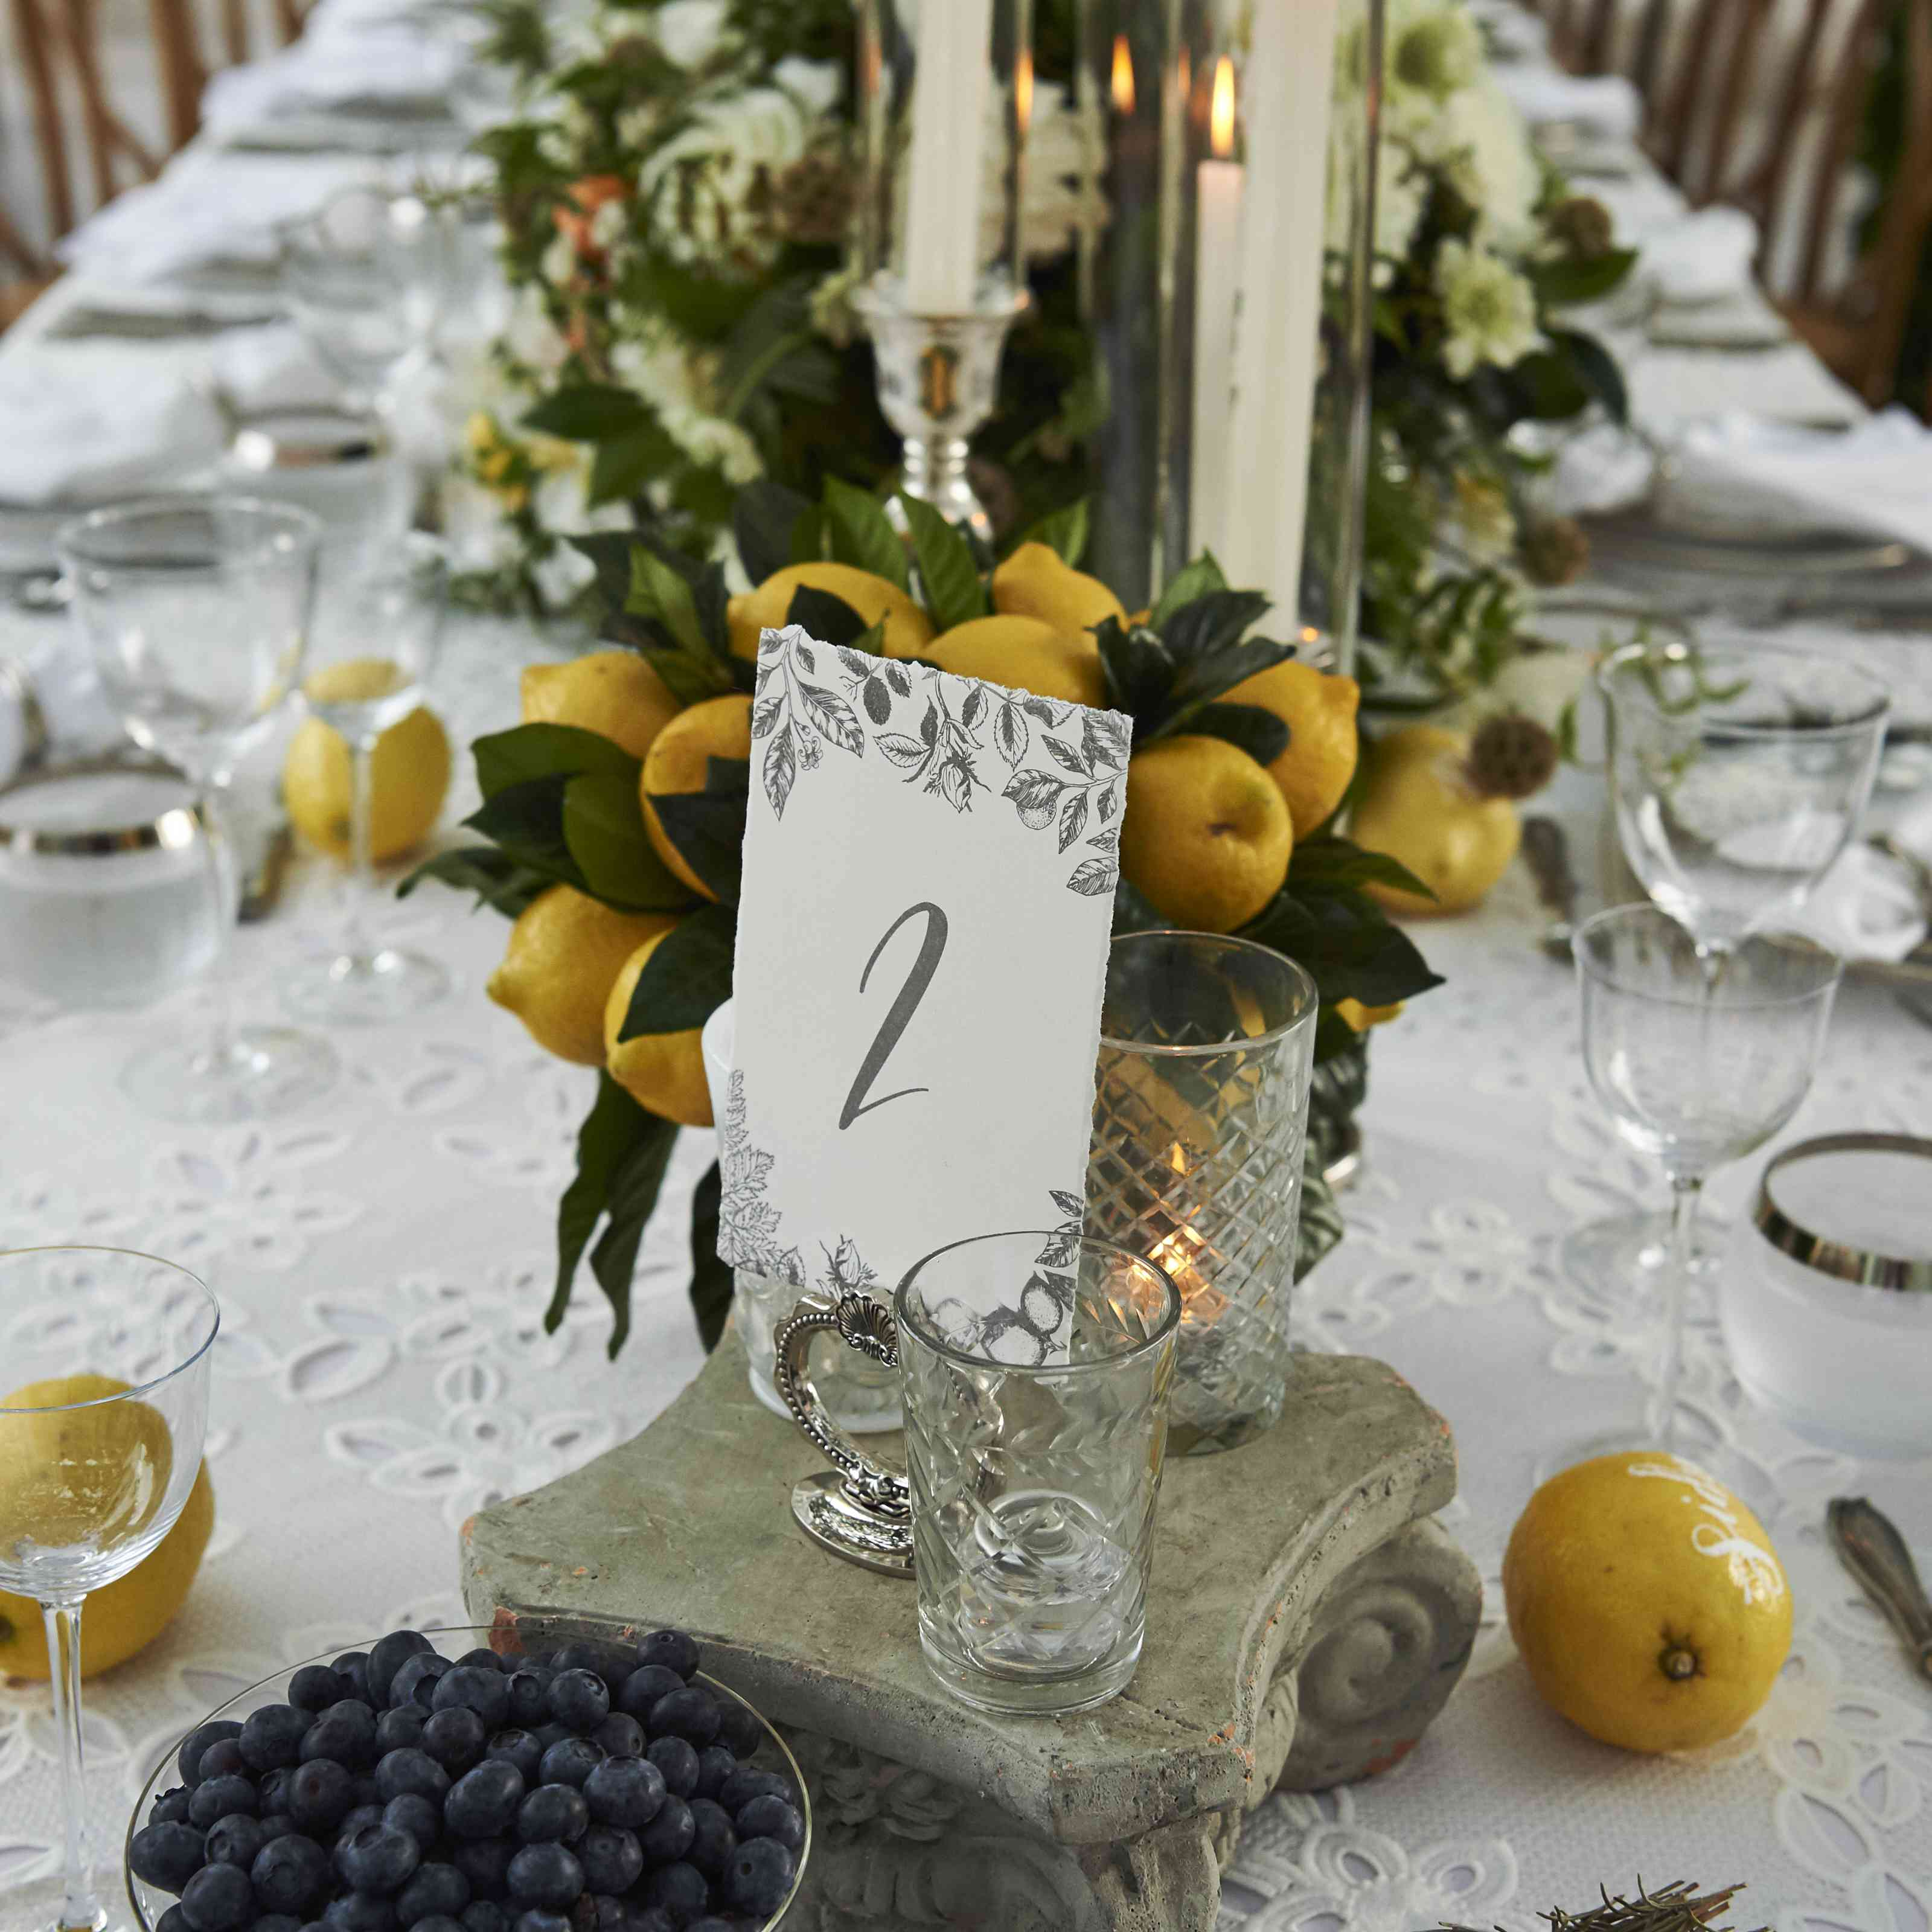 Table with Lemons